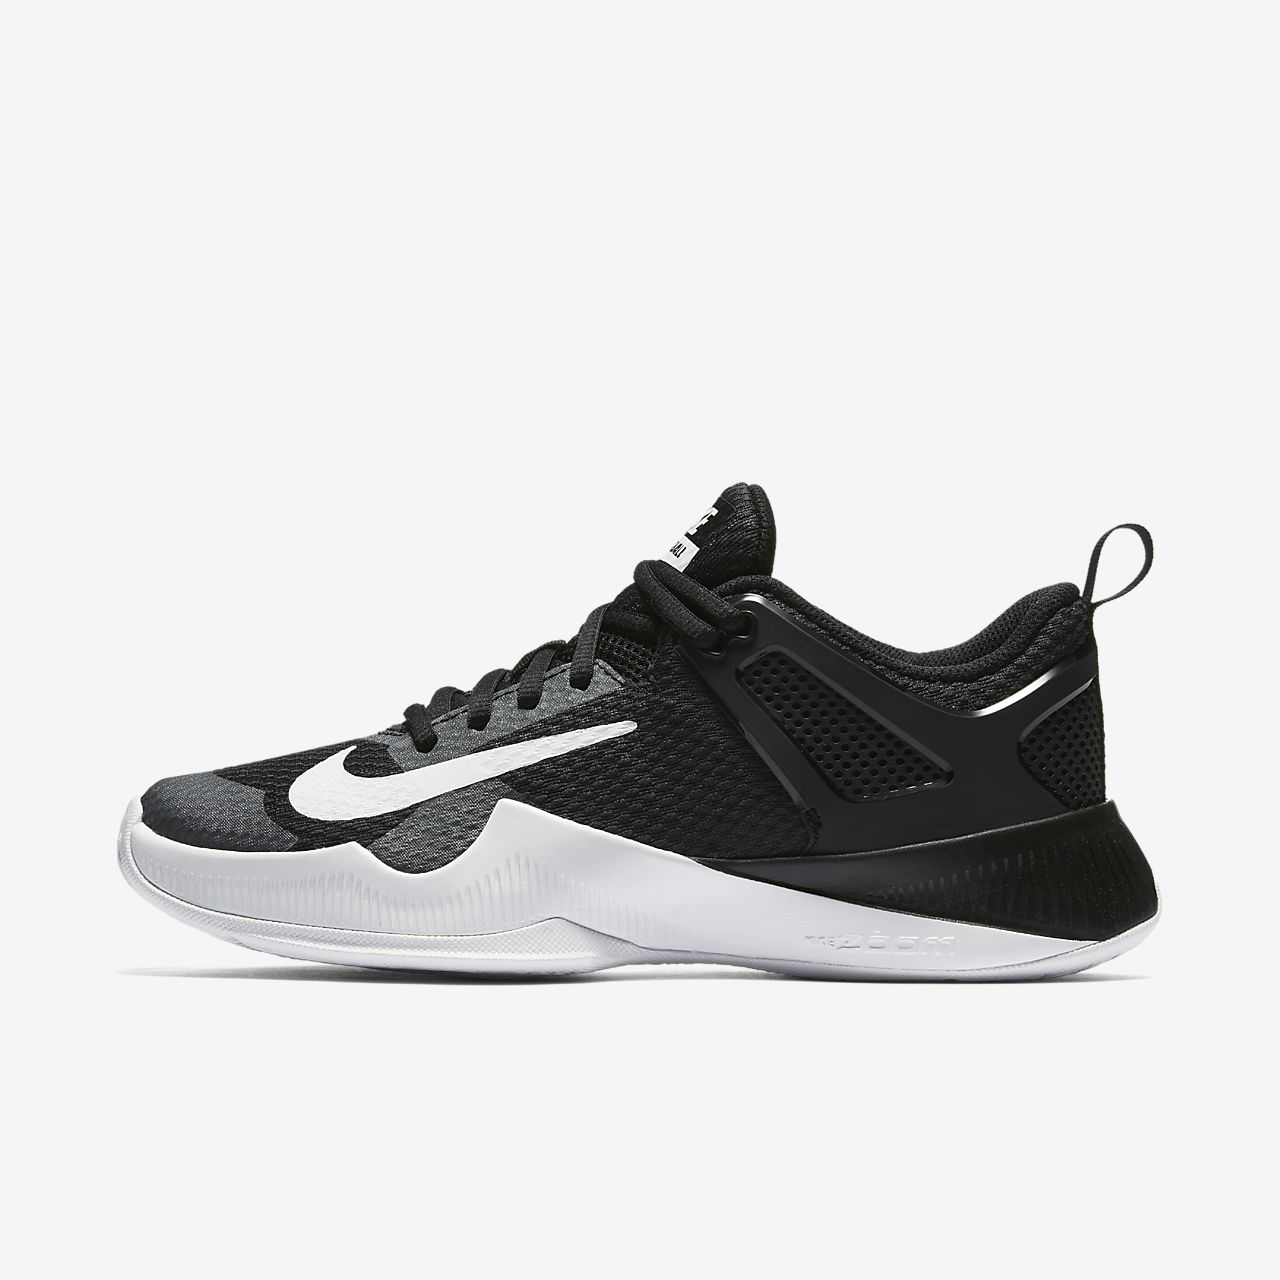 Nike air zoom hyperace womens volleyball shoe nike nike air zoom hyperace womens volleyball shoe buycottarizona Choice Image